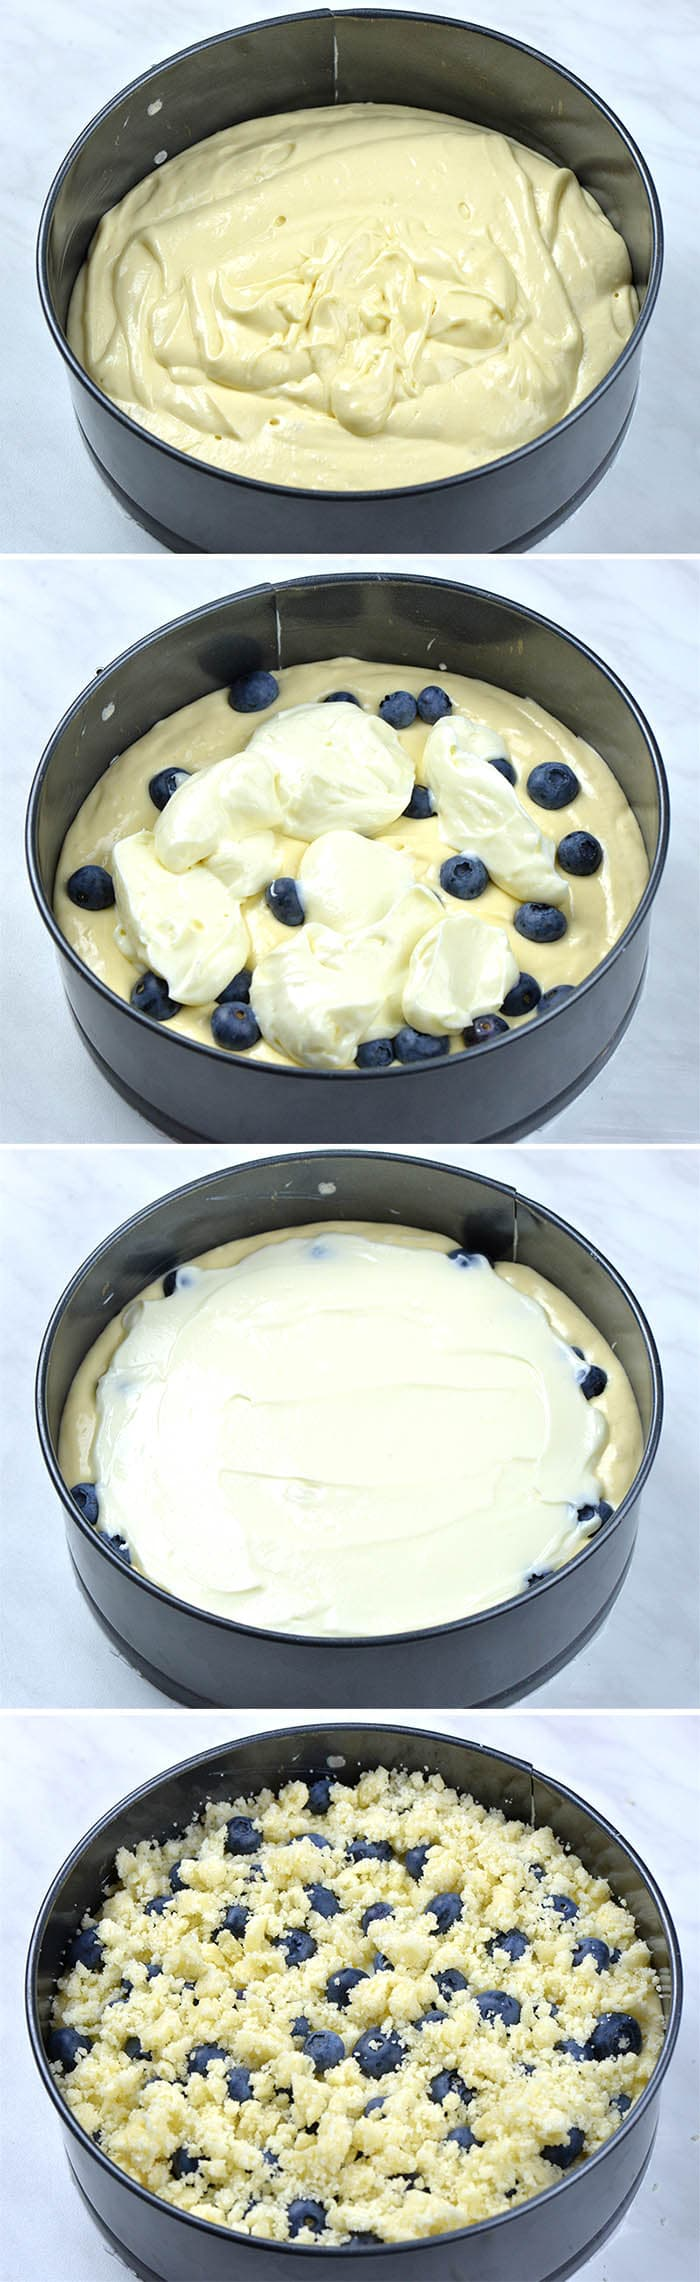 Step by step cake layers in springform pan: cake batter, cream cheese layer, blueberry layer and streusel crumbs.